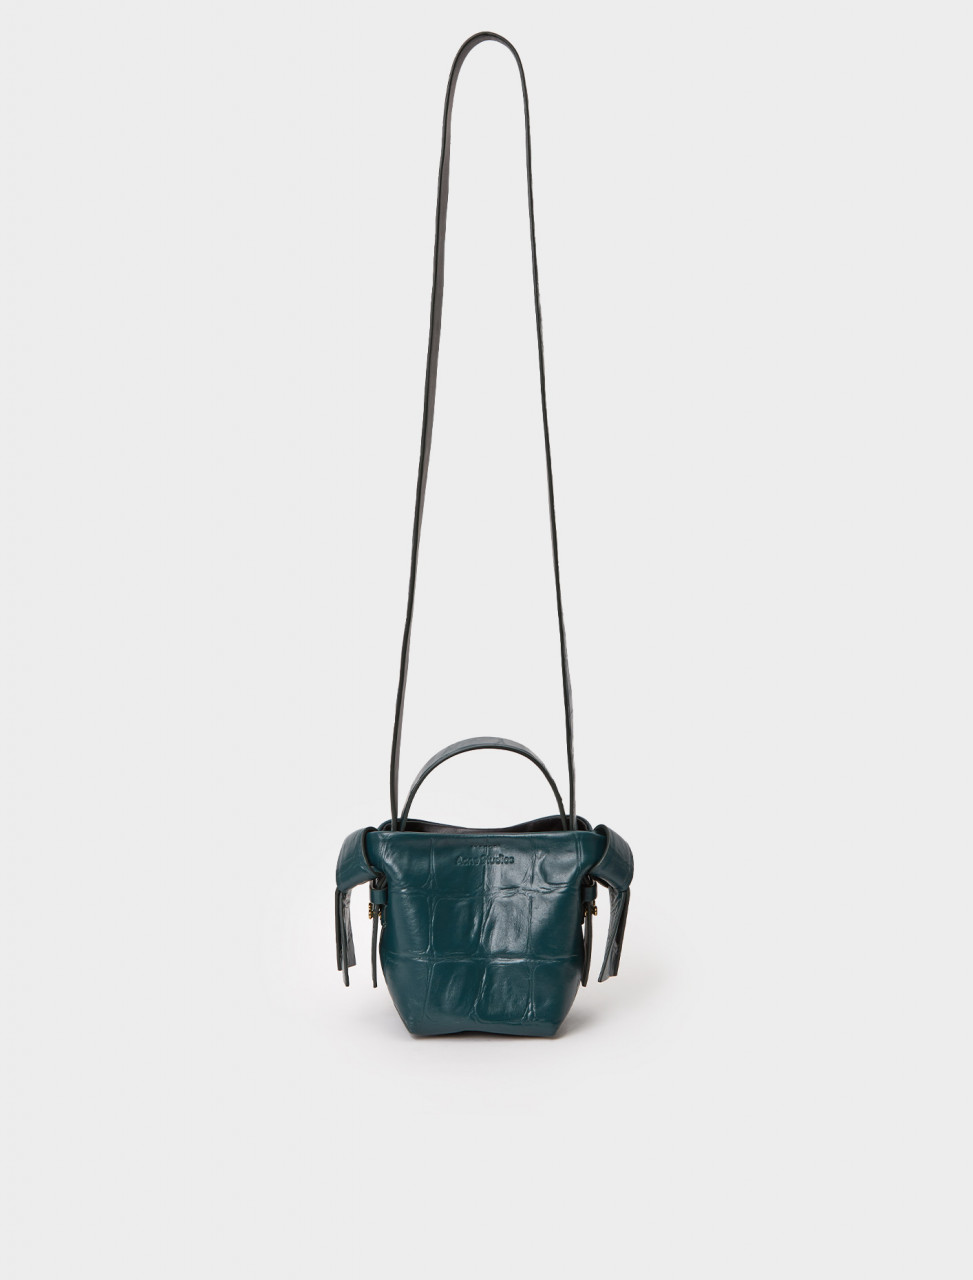 A10137-AB4 ACNE STUDIOS MICRO CROCODILE HANDBAG EMERALD GREEN